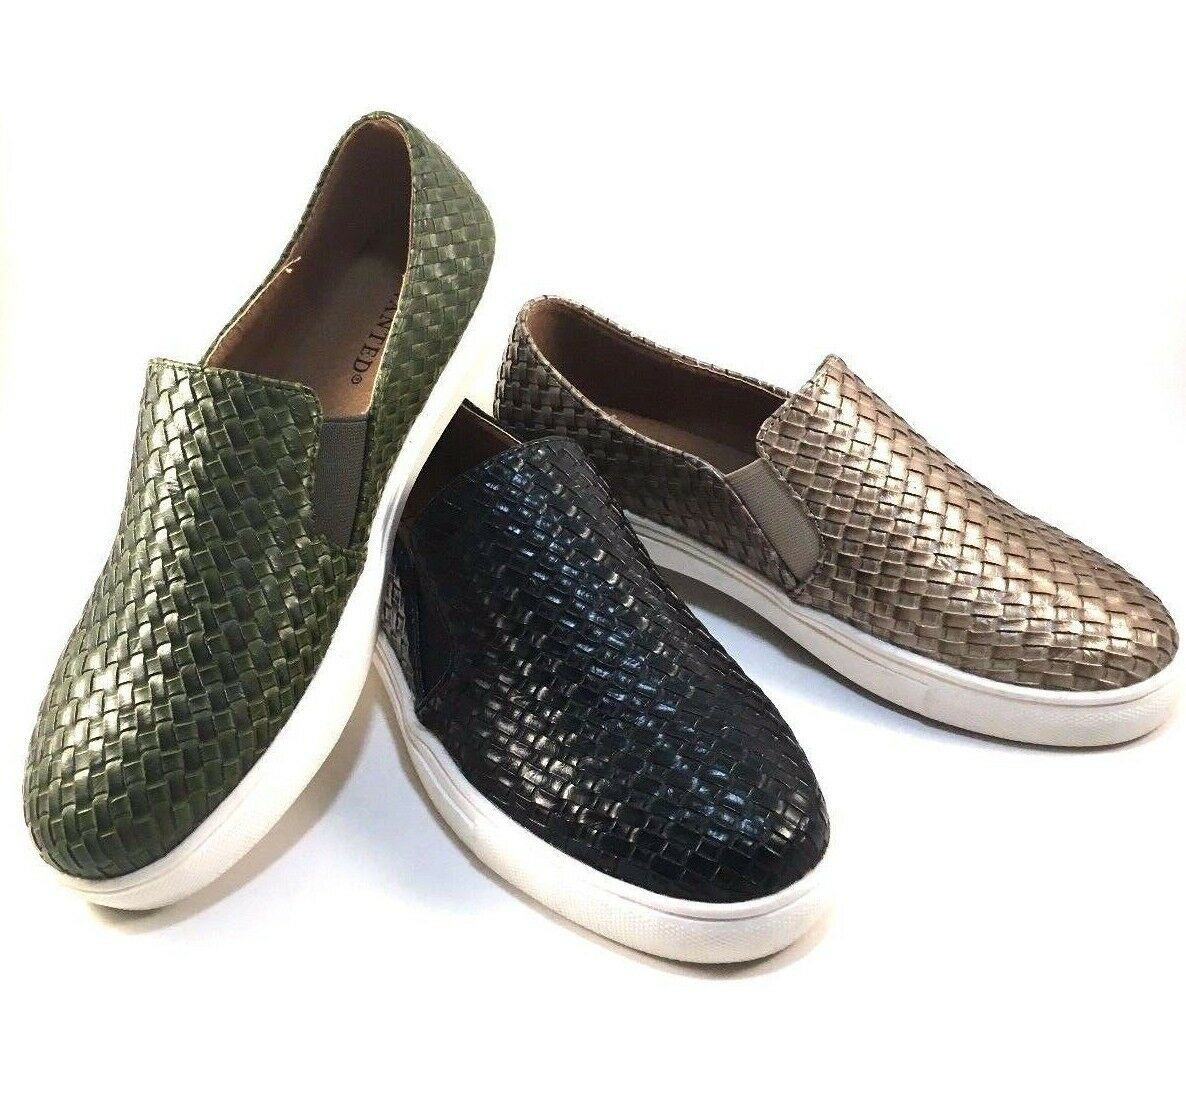 Wanted Boca Round Toe Slip On Sneakers Choose Sz/Color